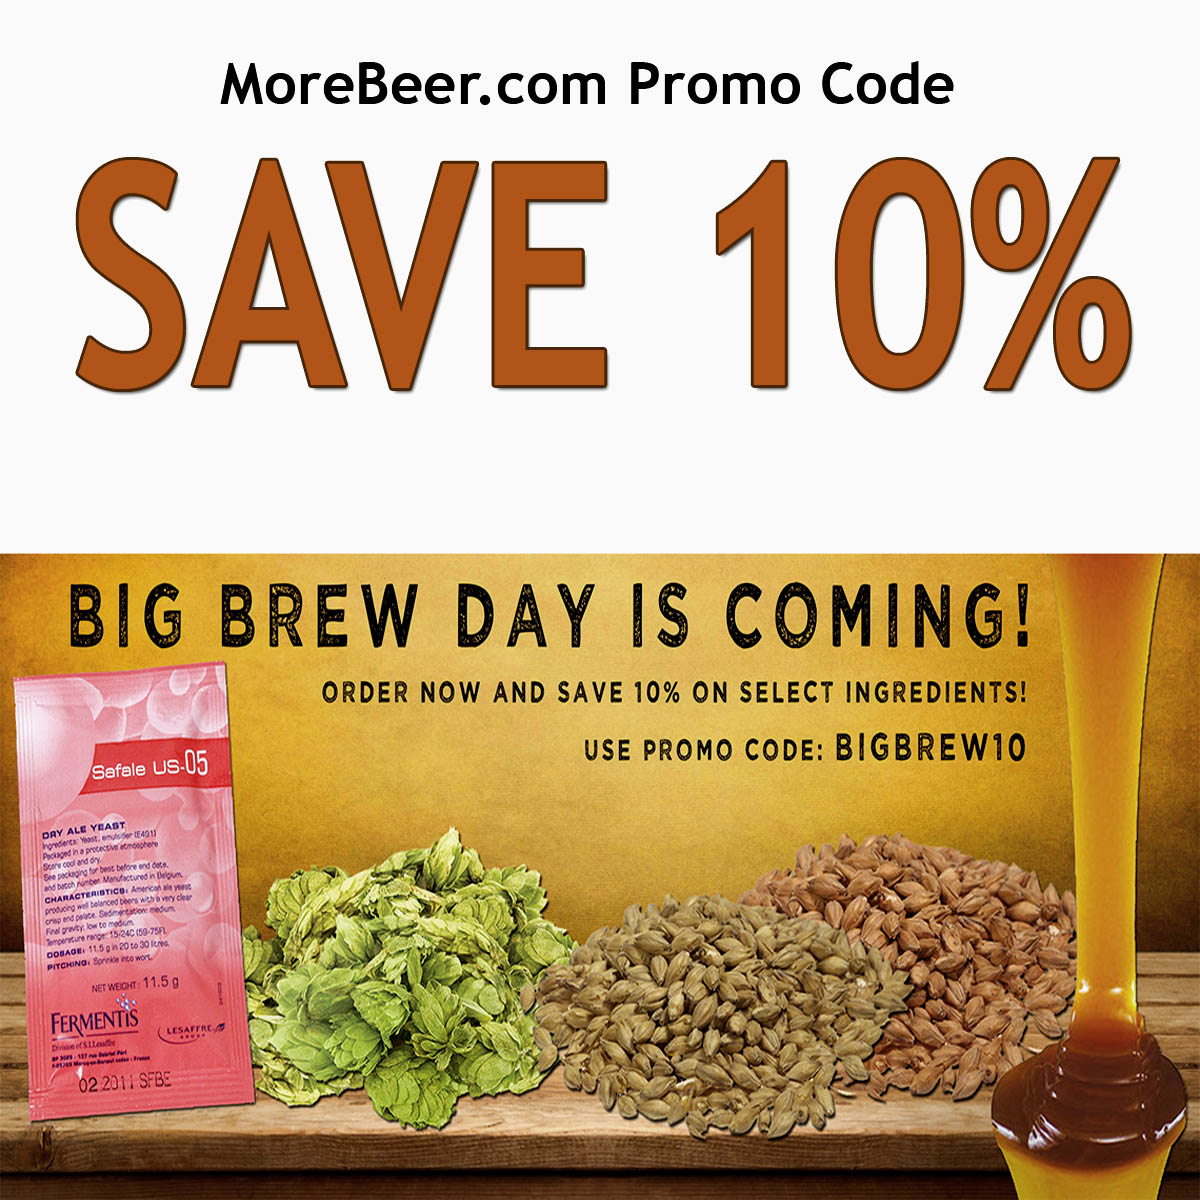 Coupon Code For Save 10% On Select Home Brewing Ingredients With This MoreBeer.com Promo Code Coupon Code